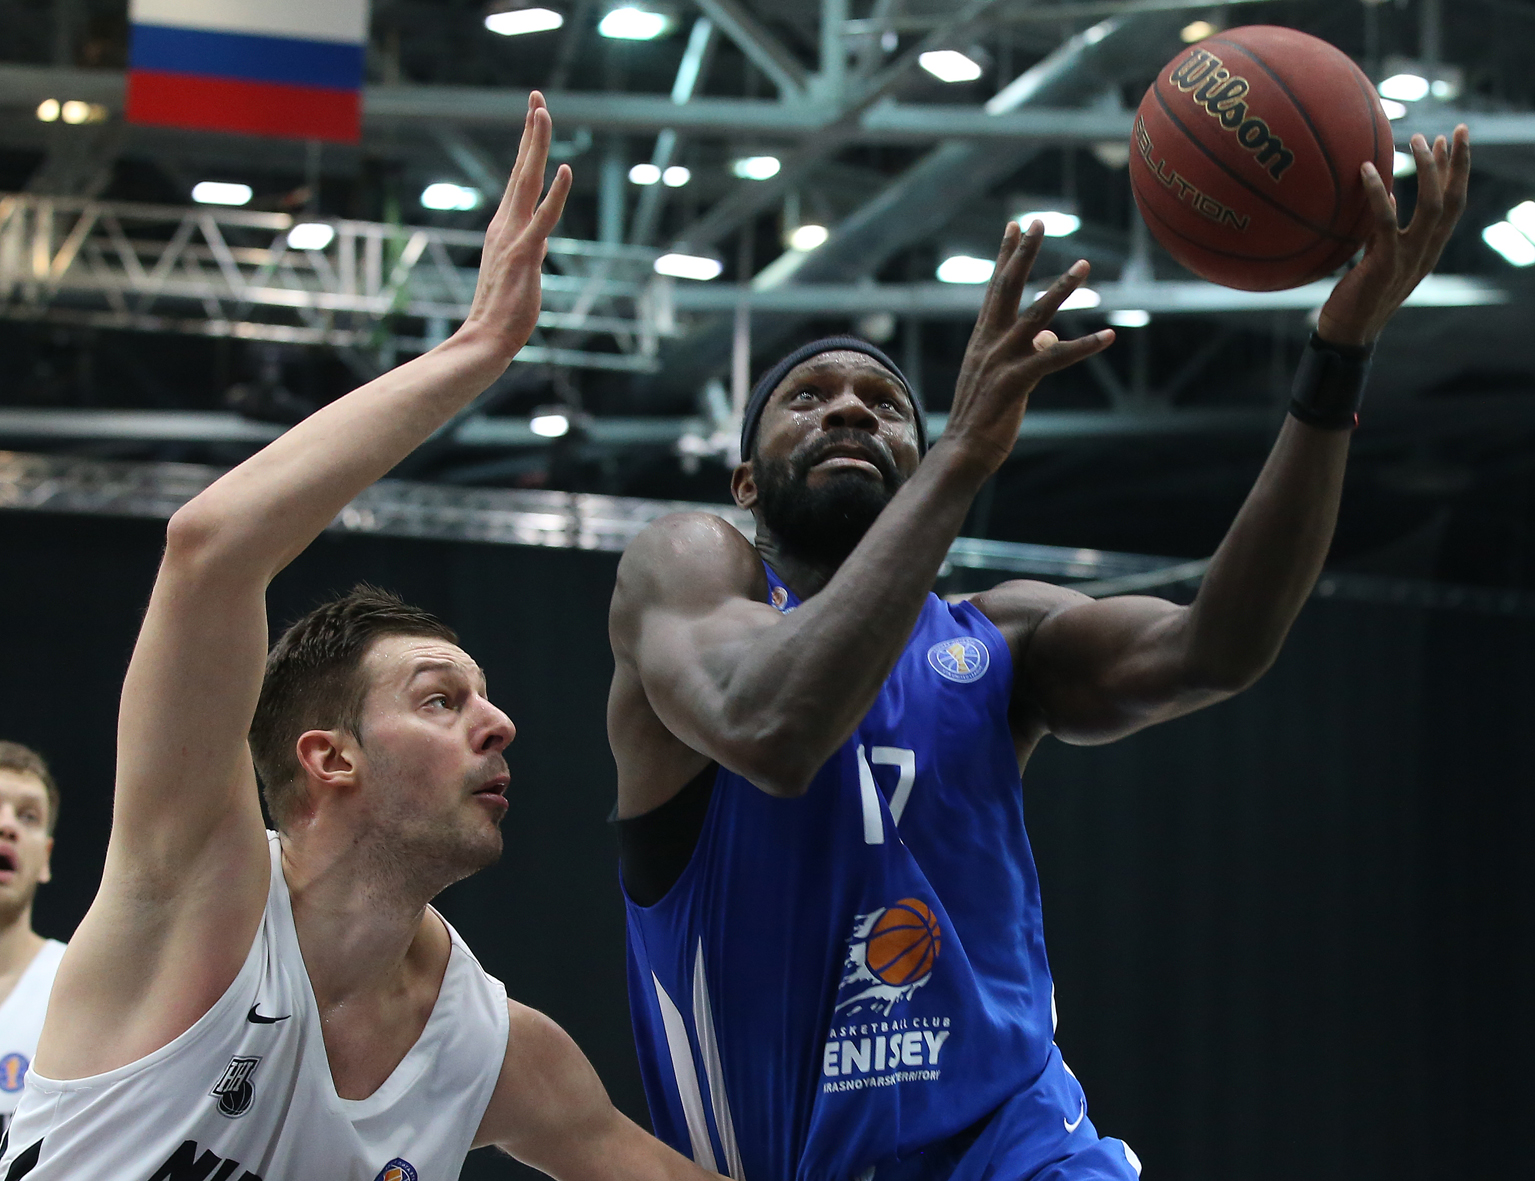 Enisey Outlasts Nizhny Novgorod On The Road